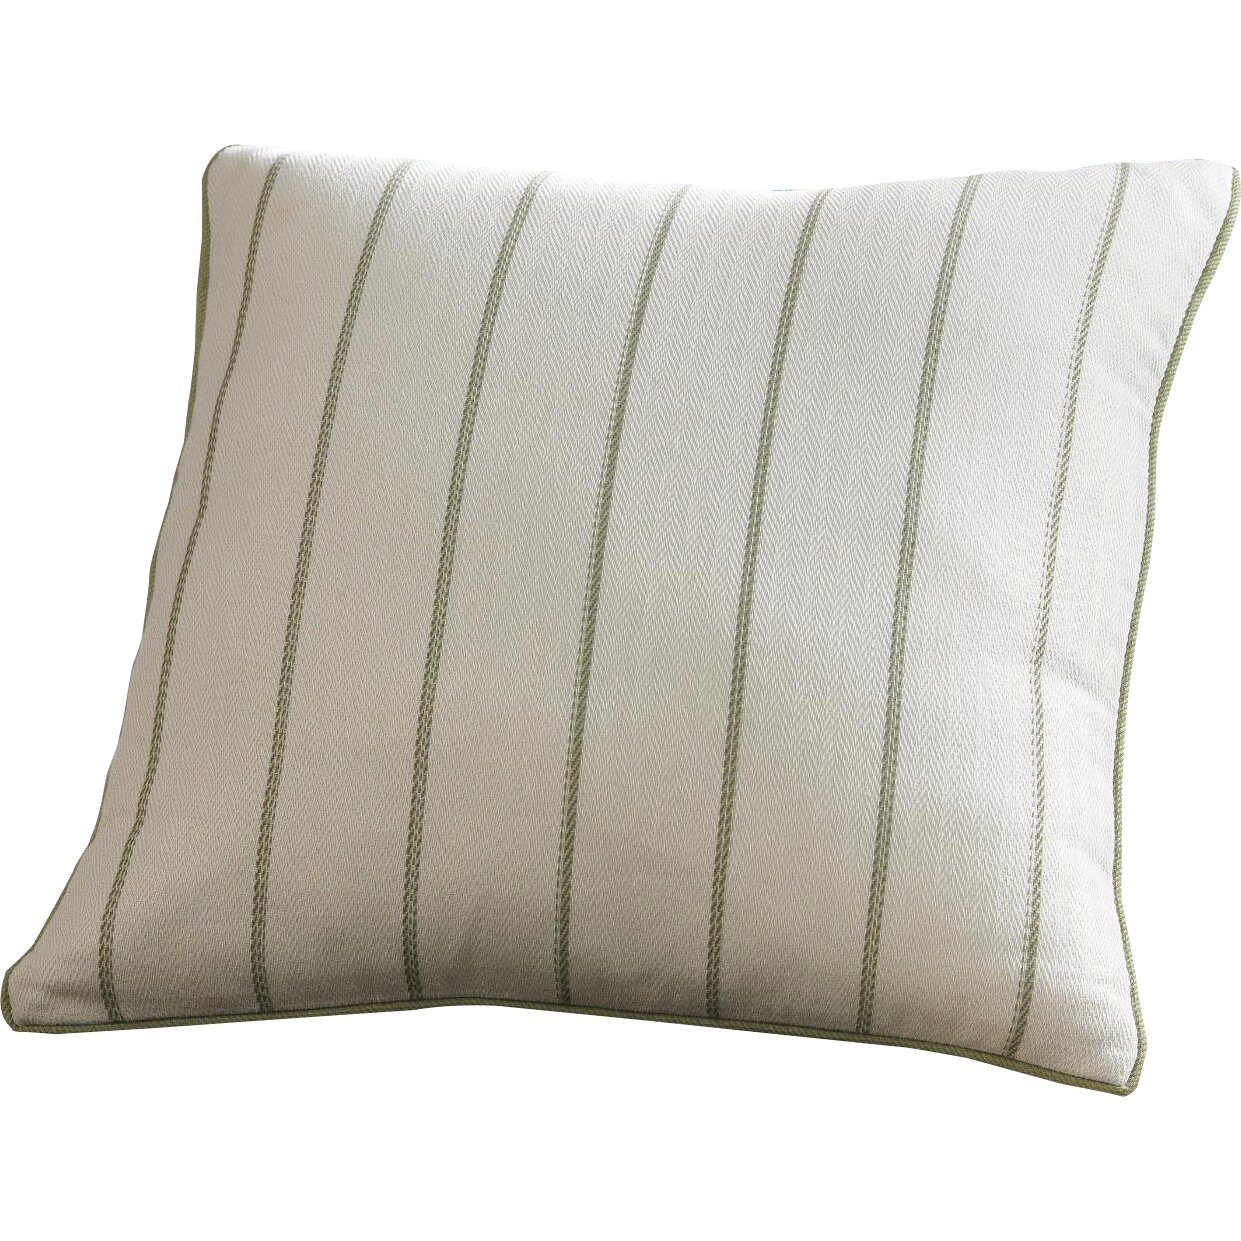 Tommy Bahama Bedding Montauk Drifter Bed Rest Throw Pillow